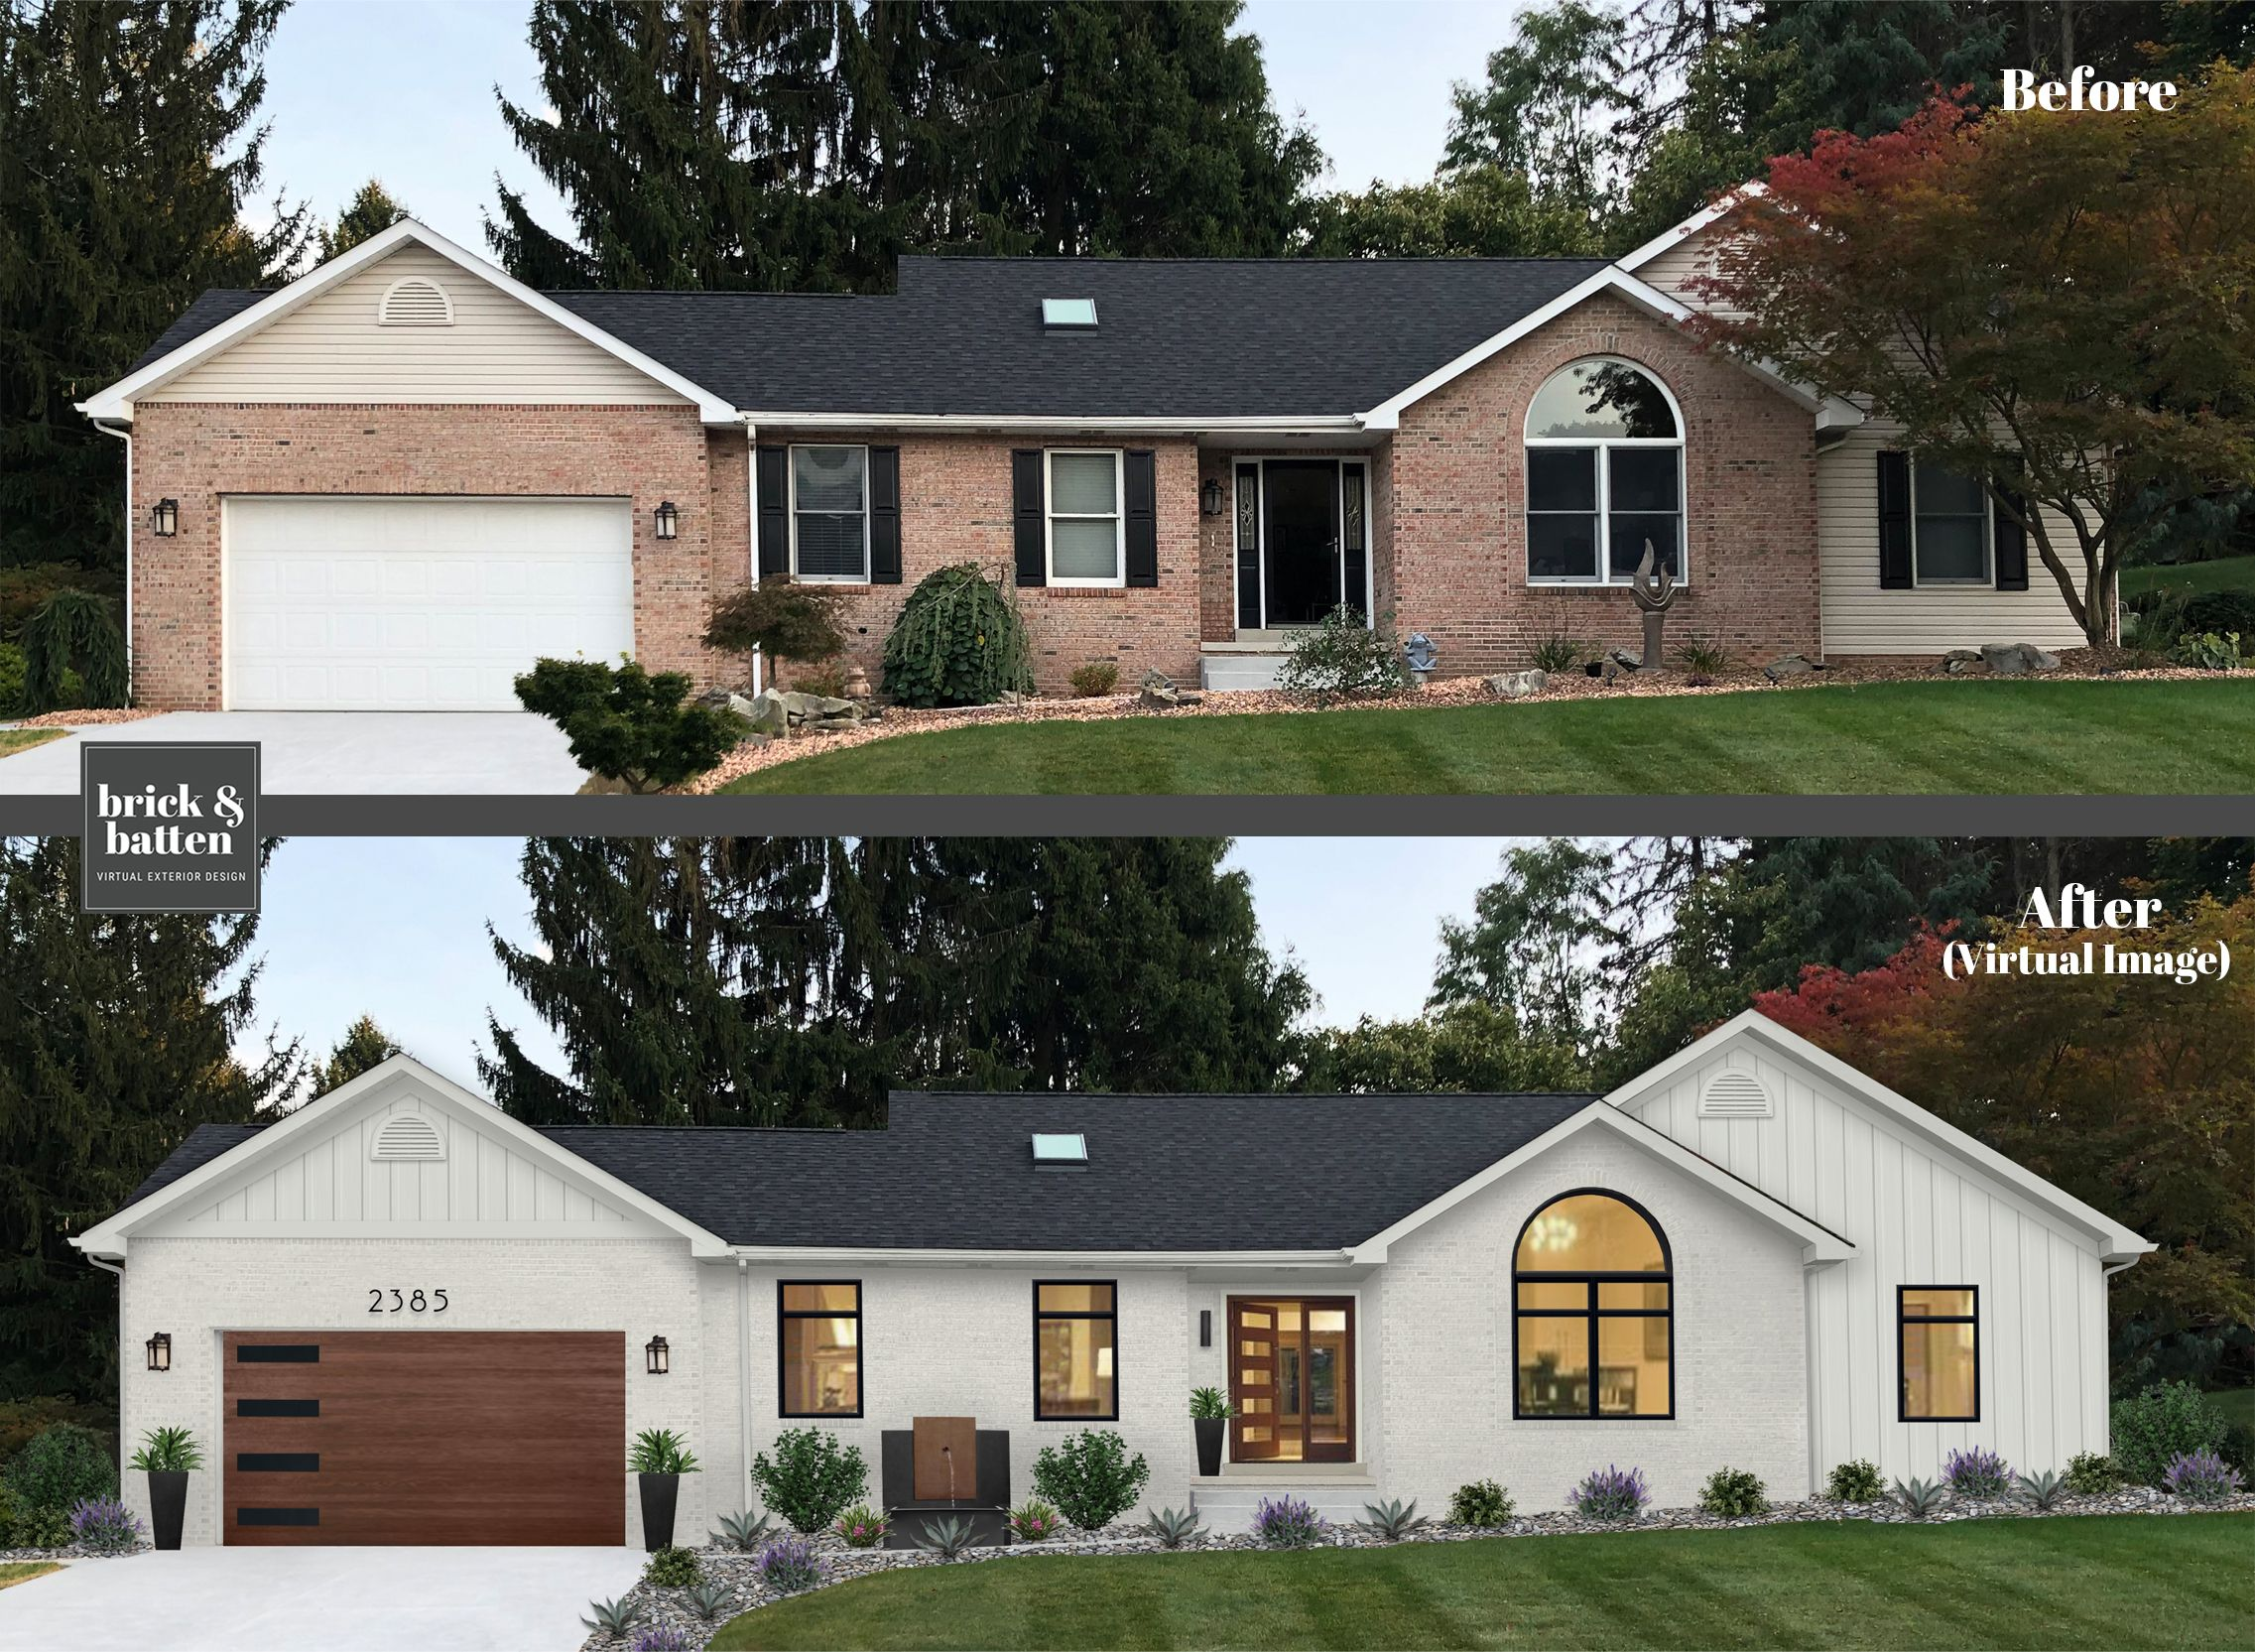 18 Predictions For 2020 Exterior Home Design In 2020 With Images